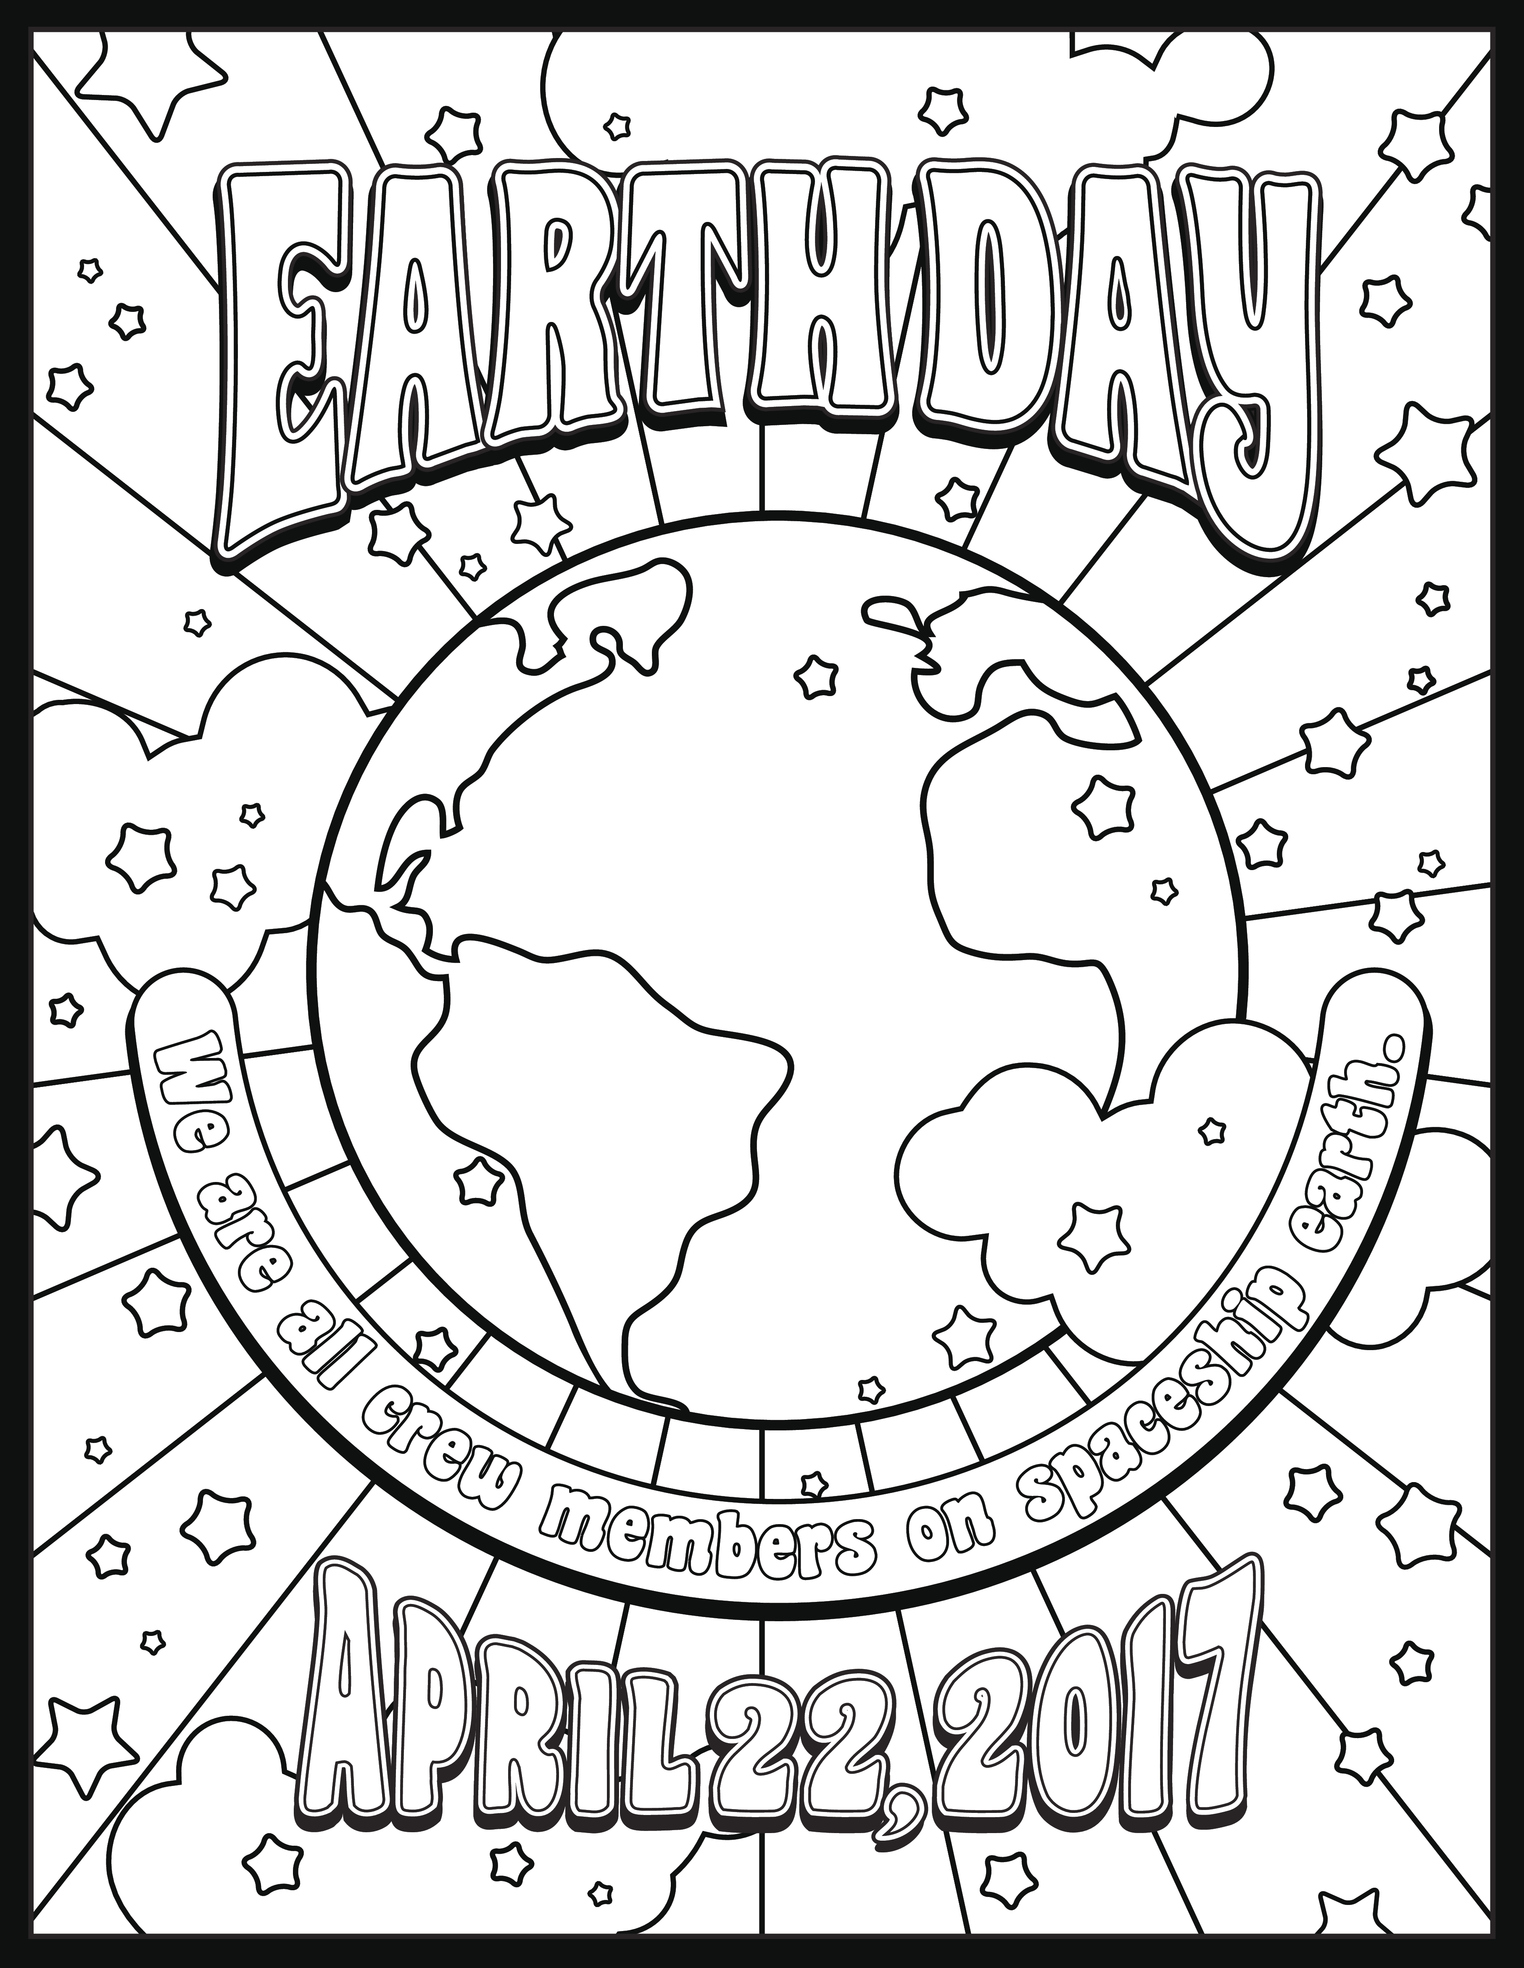 Earth Day coloring page or banner design in 1960s hippie style